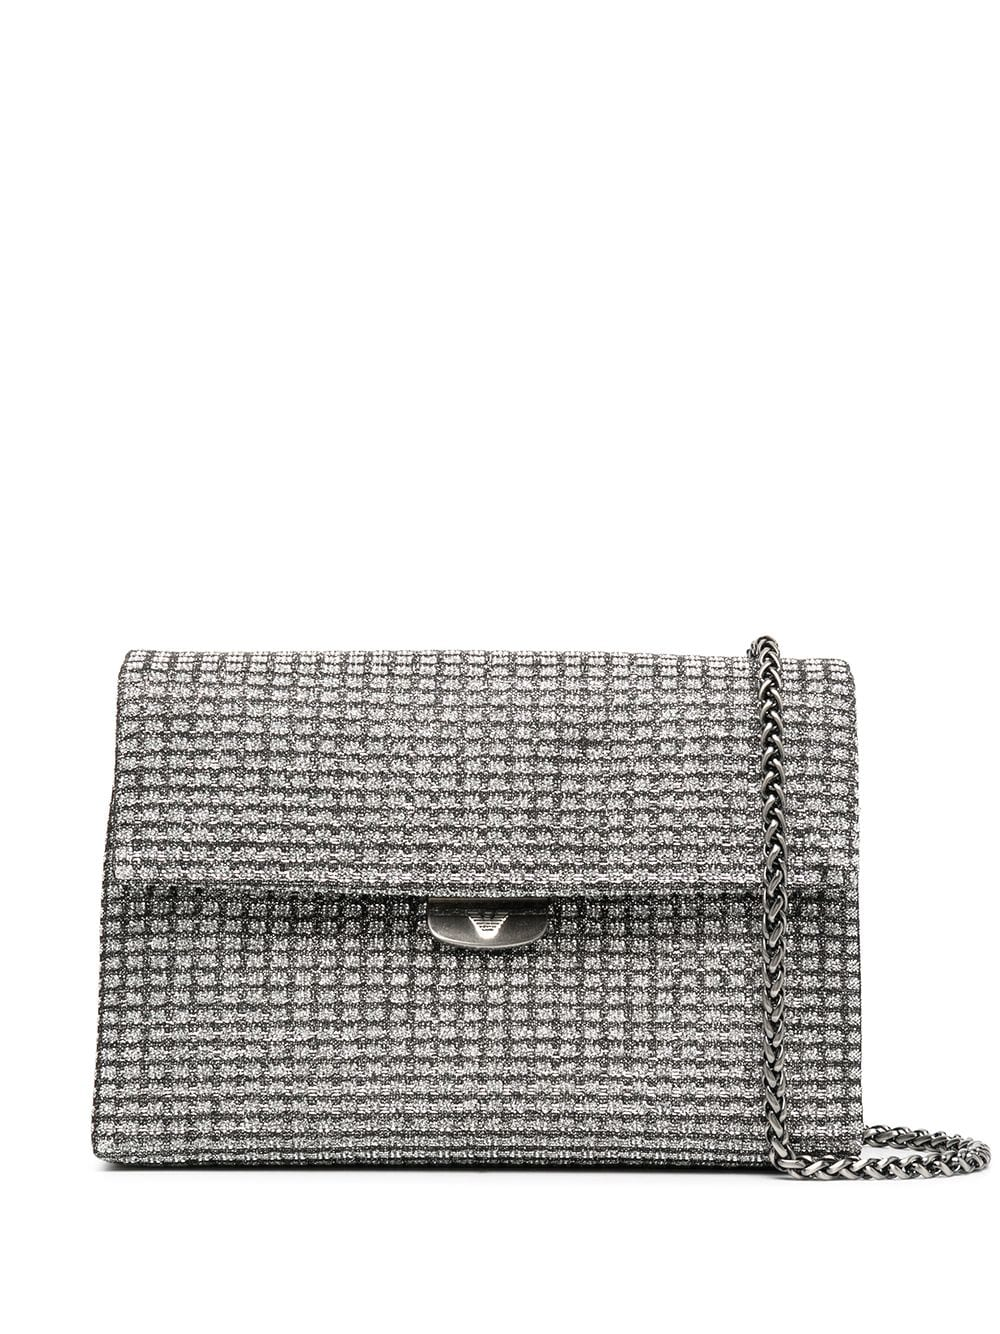 Glittered Chained Clutch